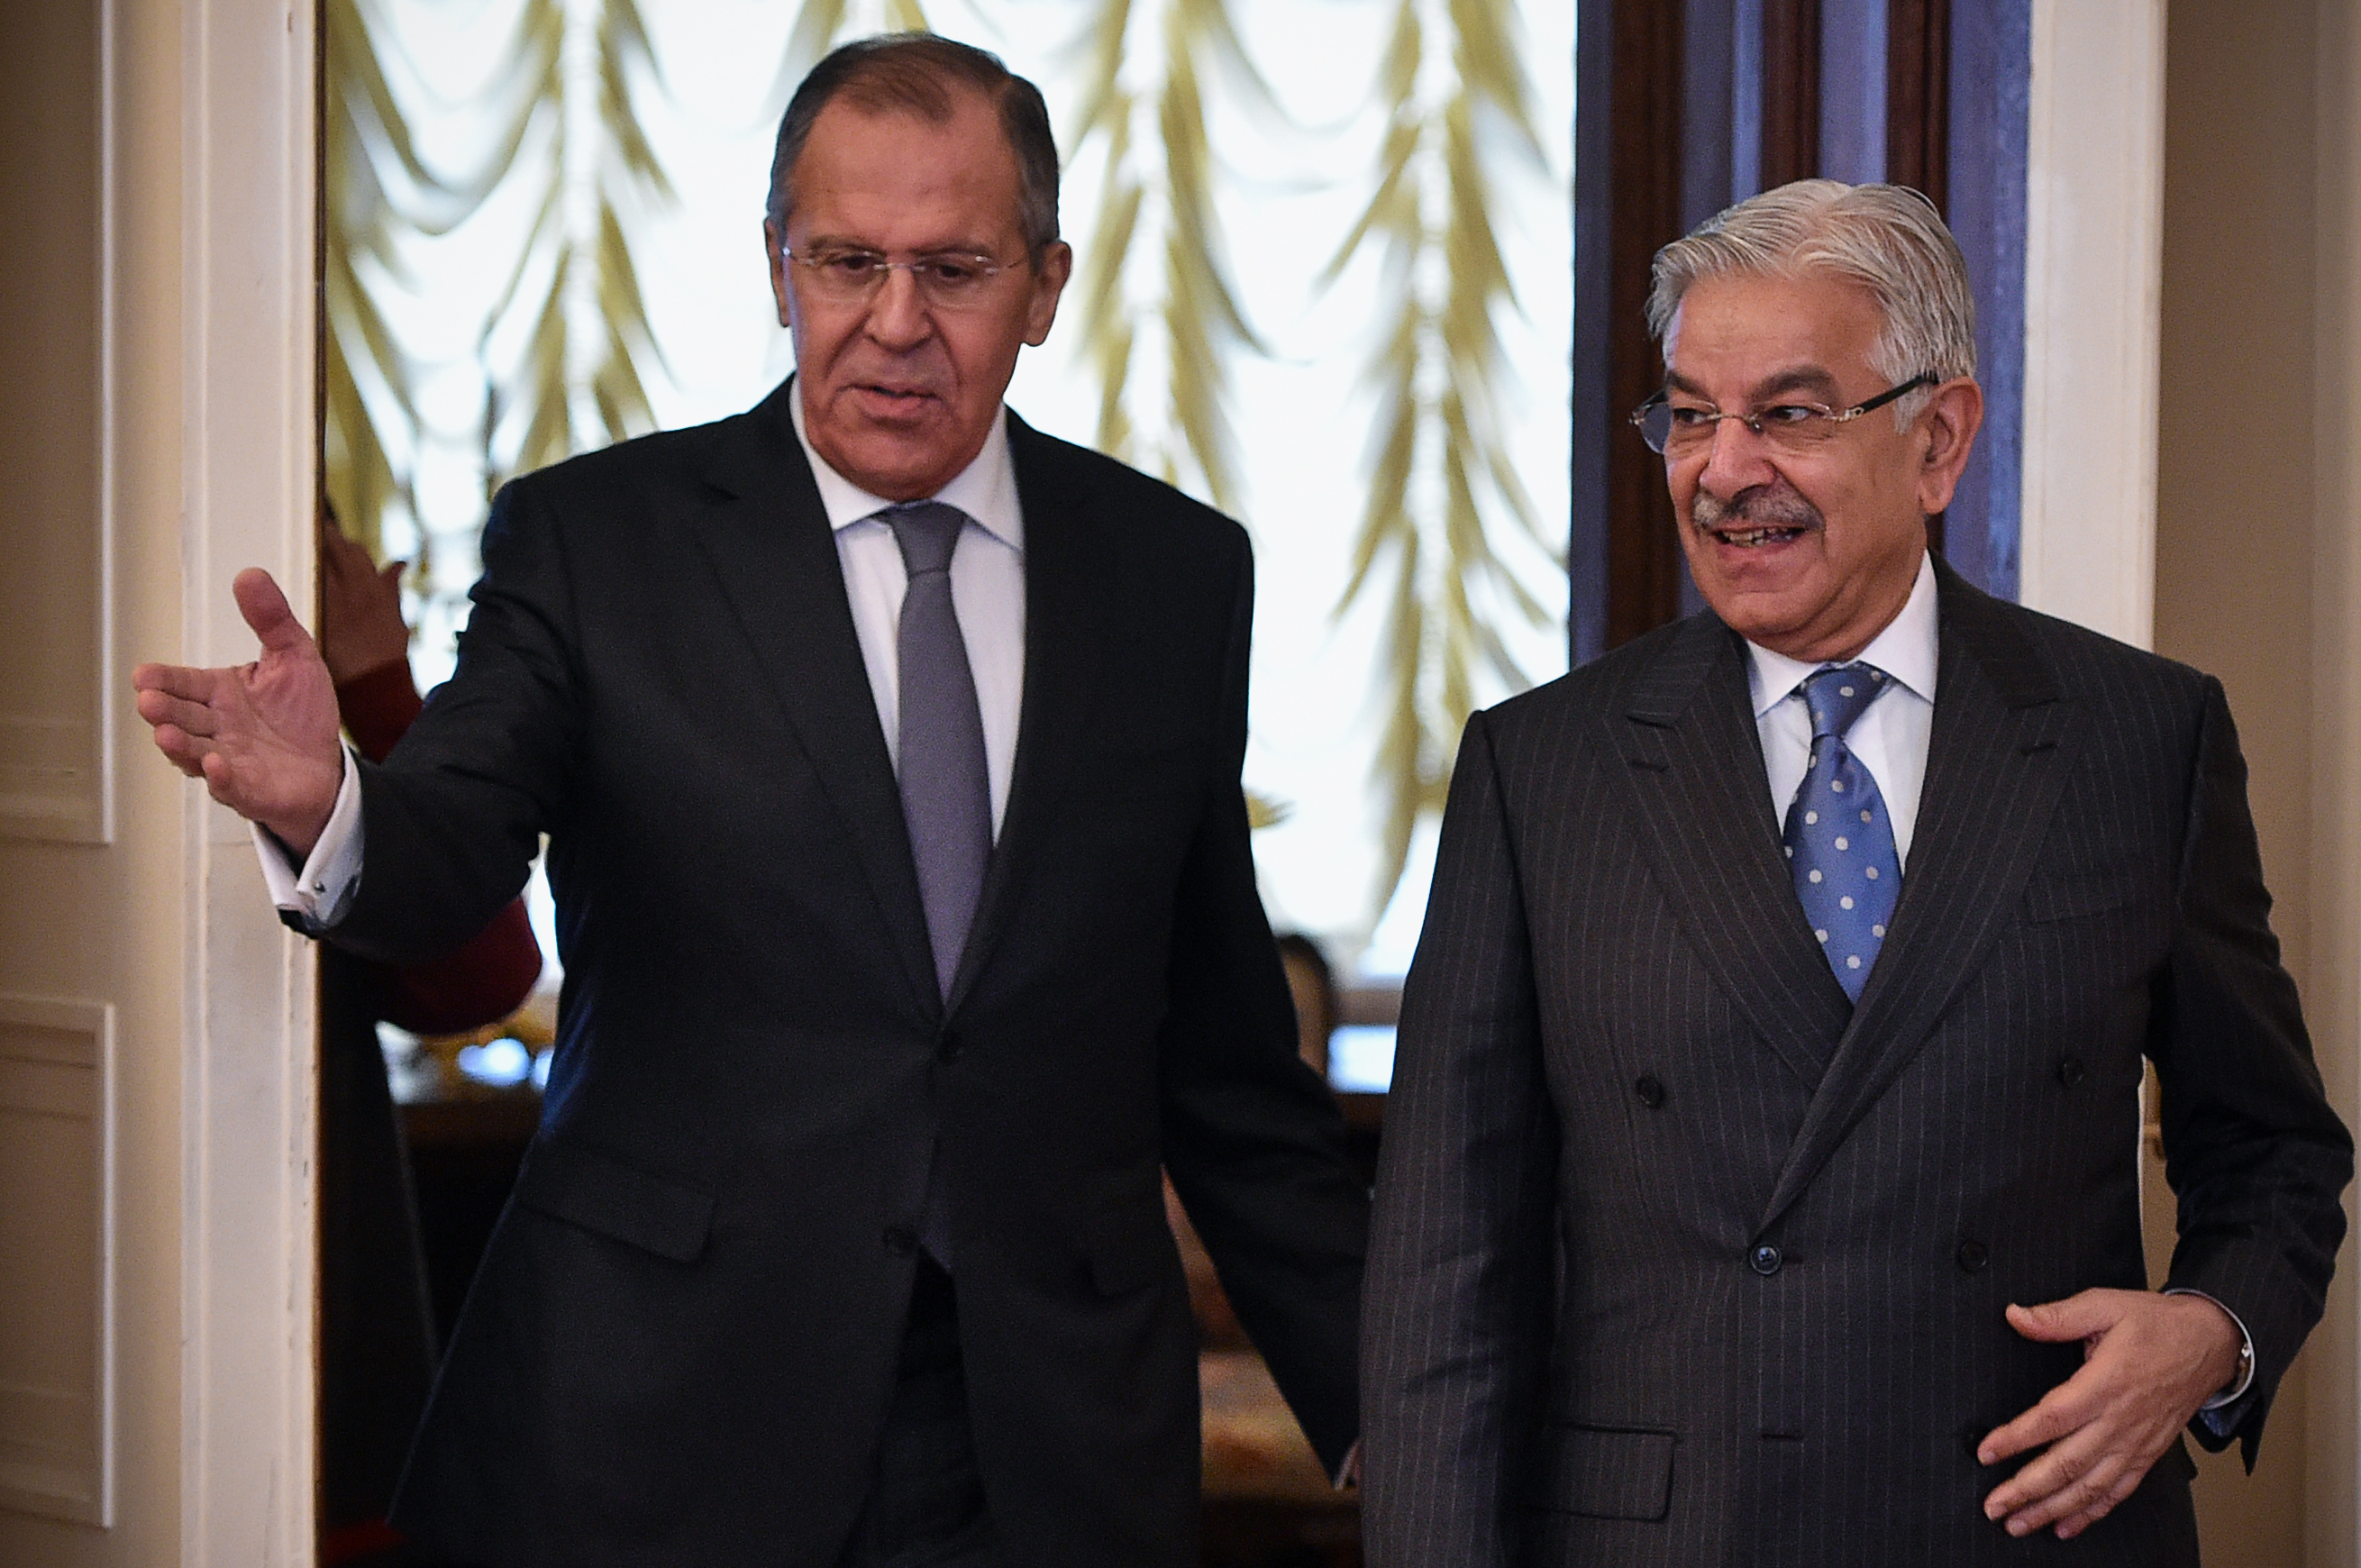 Russia's 'friendly' overtures to Pakistan raise concerns among observers